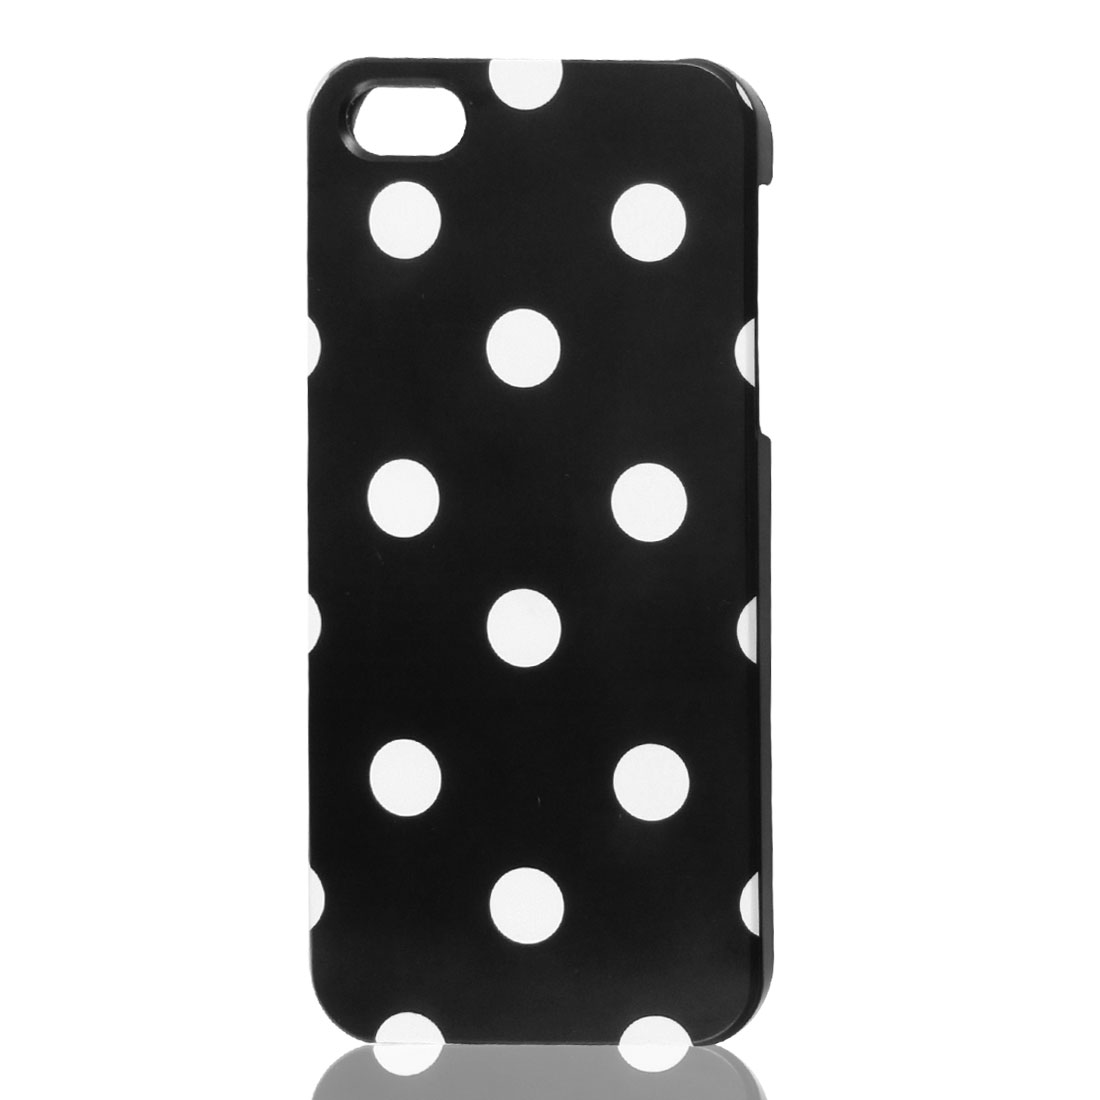 White Polka Dots Black Phone Hard Back Case Cover for Apple iPhone 5 5G